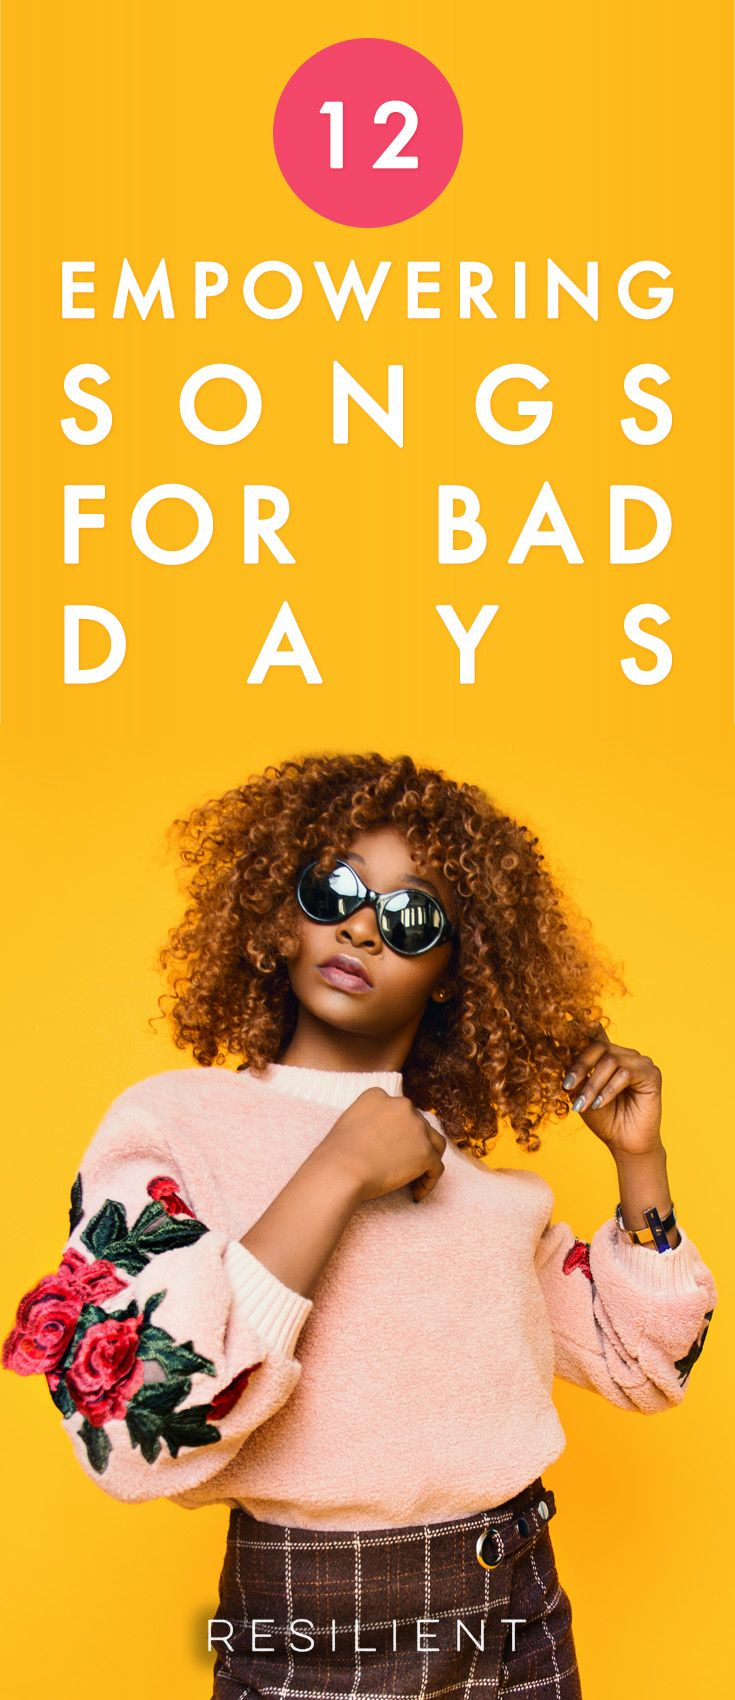 When bad days happen, it's nice to have some inspirational or motivational songs to lift your spirits and make you feel better.  Here are 12 motivational songs for bad days.